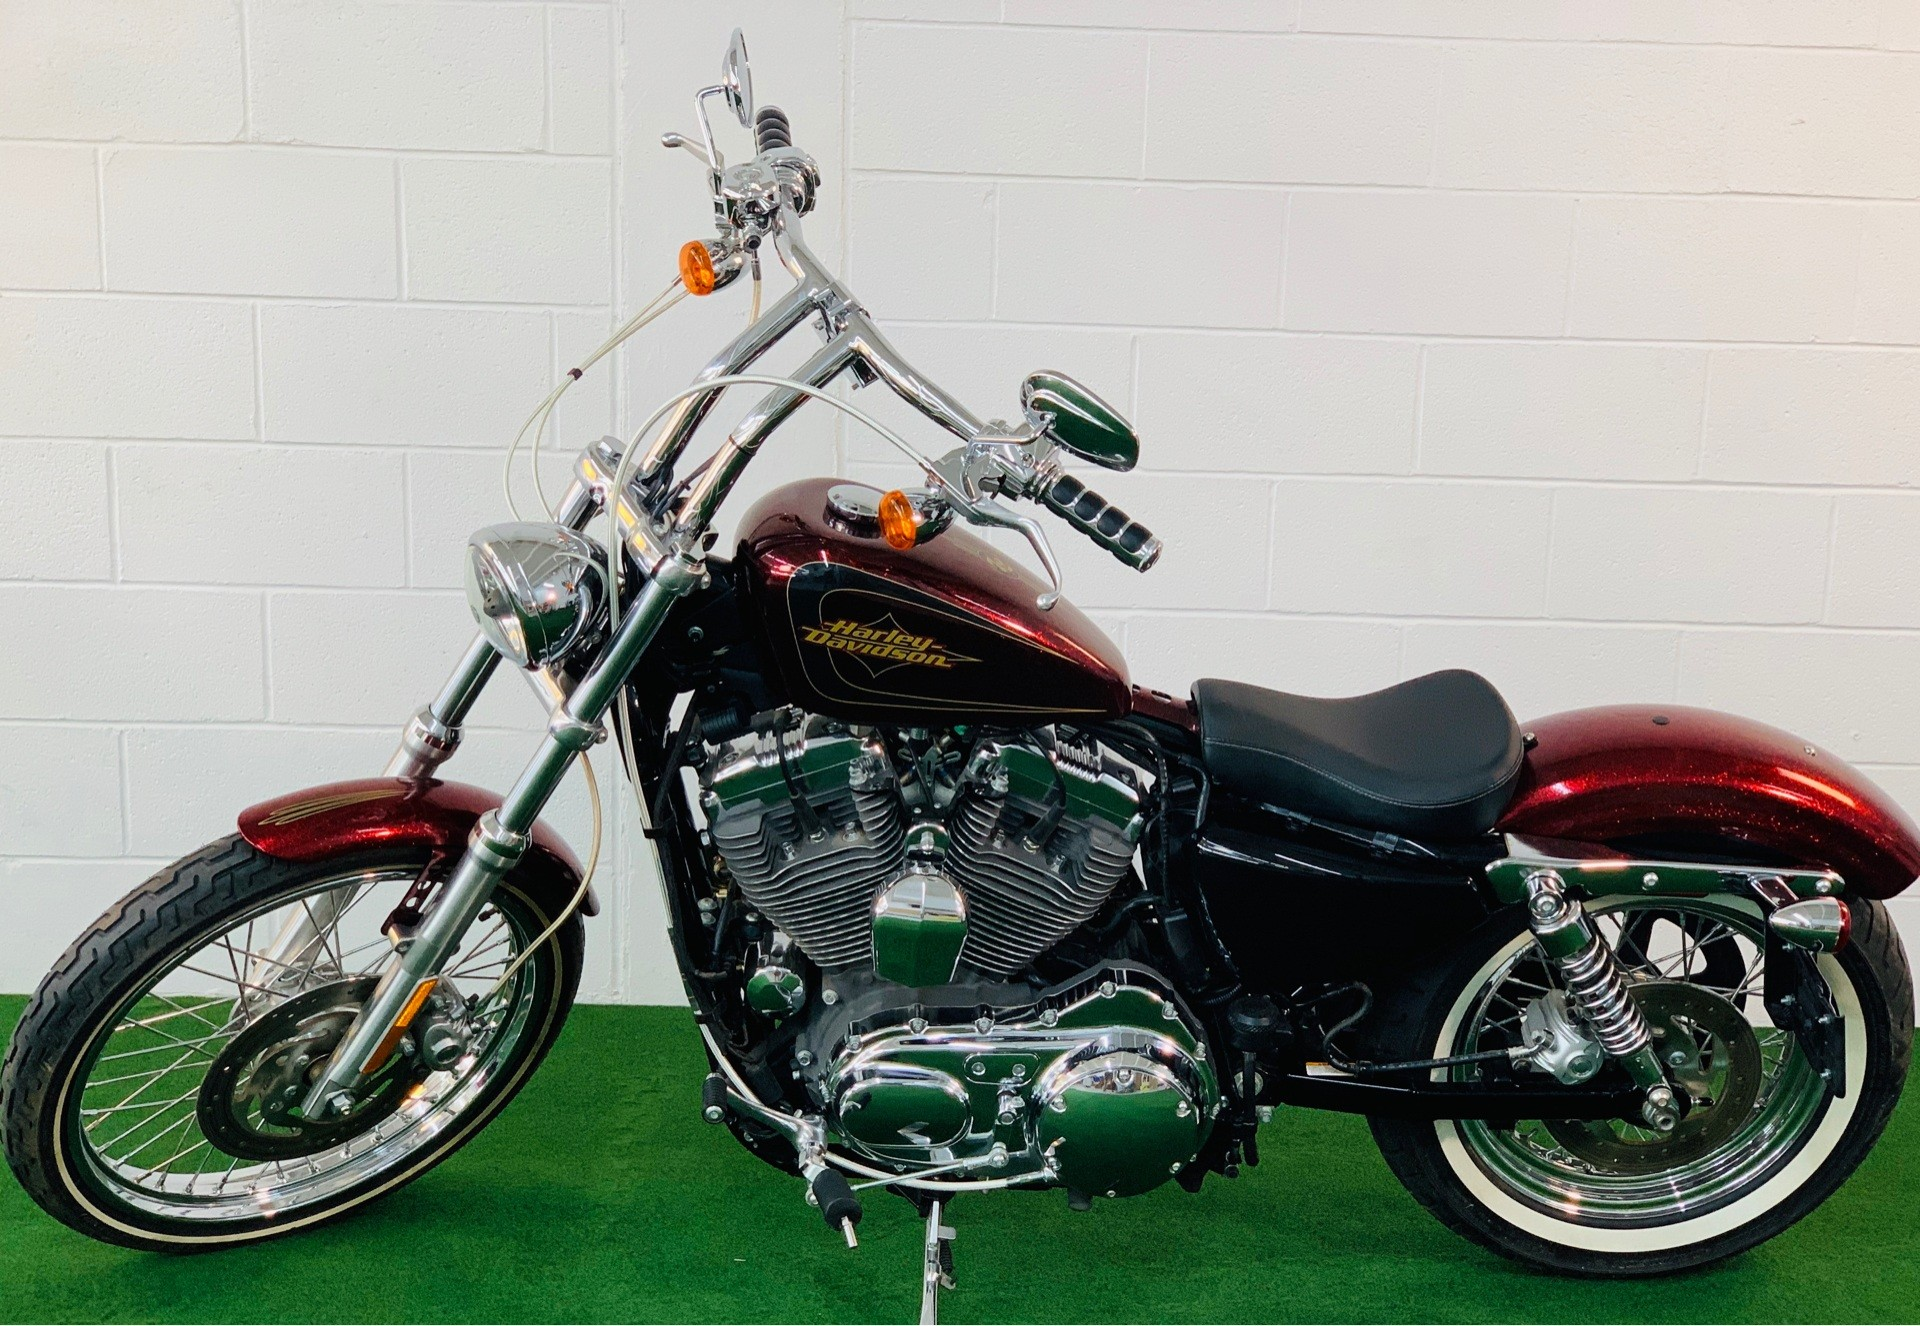 2012 Harley-Davidson 72 in Stillwater, Oklahoma - Photo 2